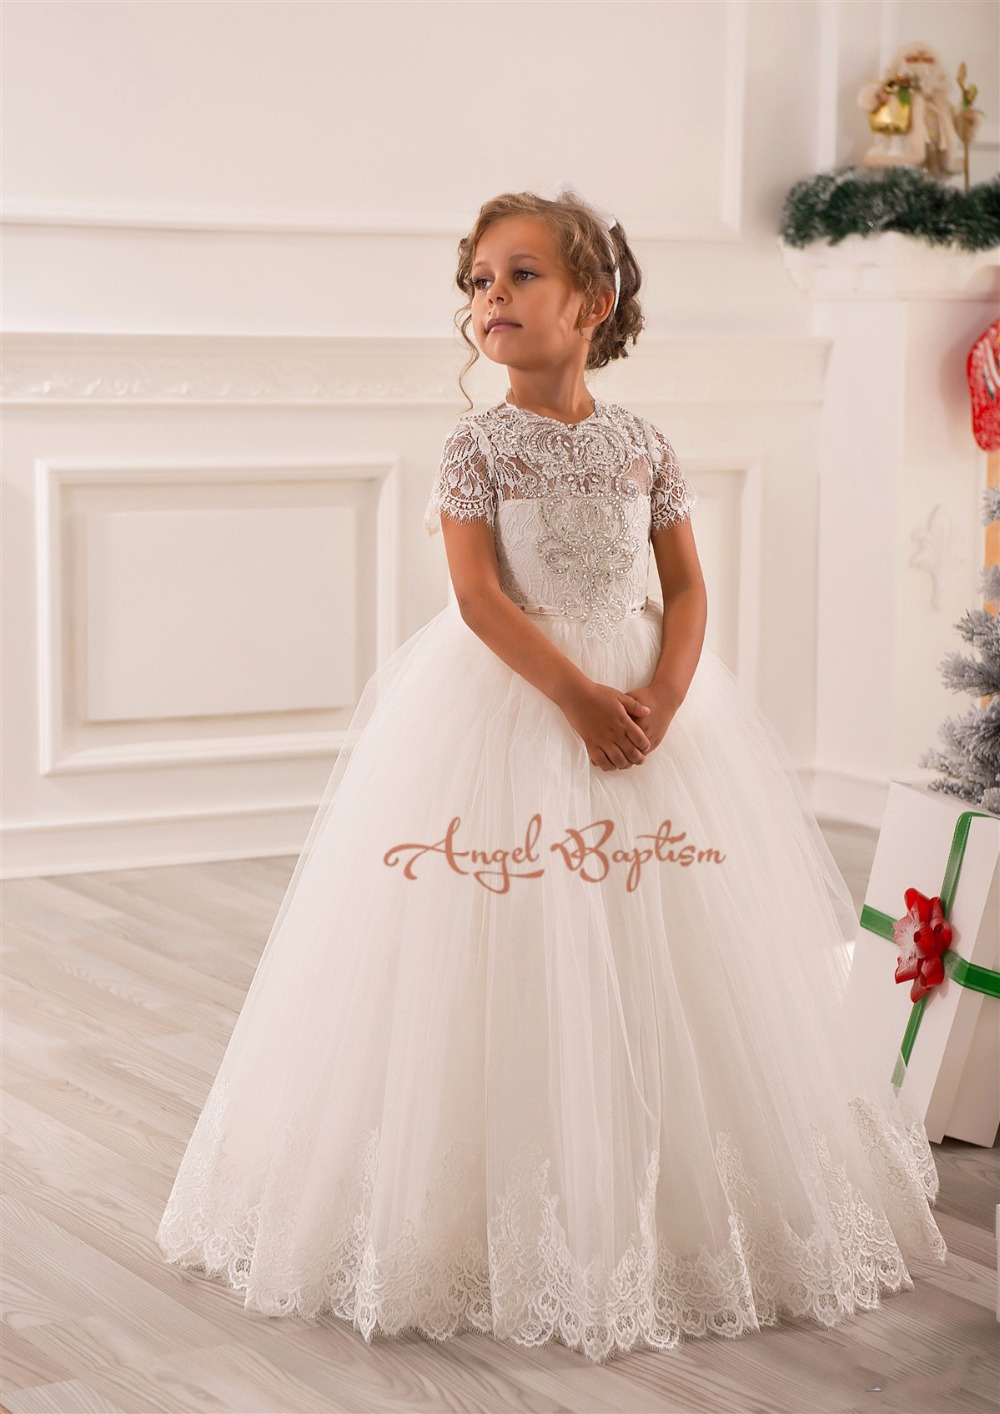 Sparkly crystals rhinestones the first communion dresses for girls Beaded Flower Girl Dresses for kids evening Puffy Ball Gowns 2017 pink flower girl dresses for wedding puffy ball gowns first communion dresses for girls pageant dresses kids evening gowns